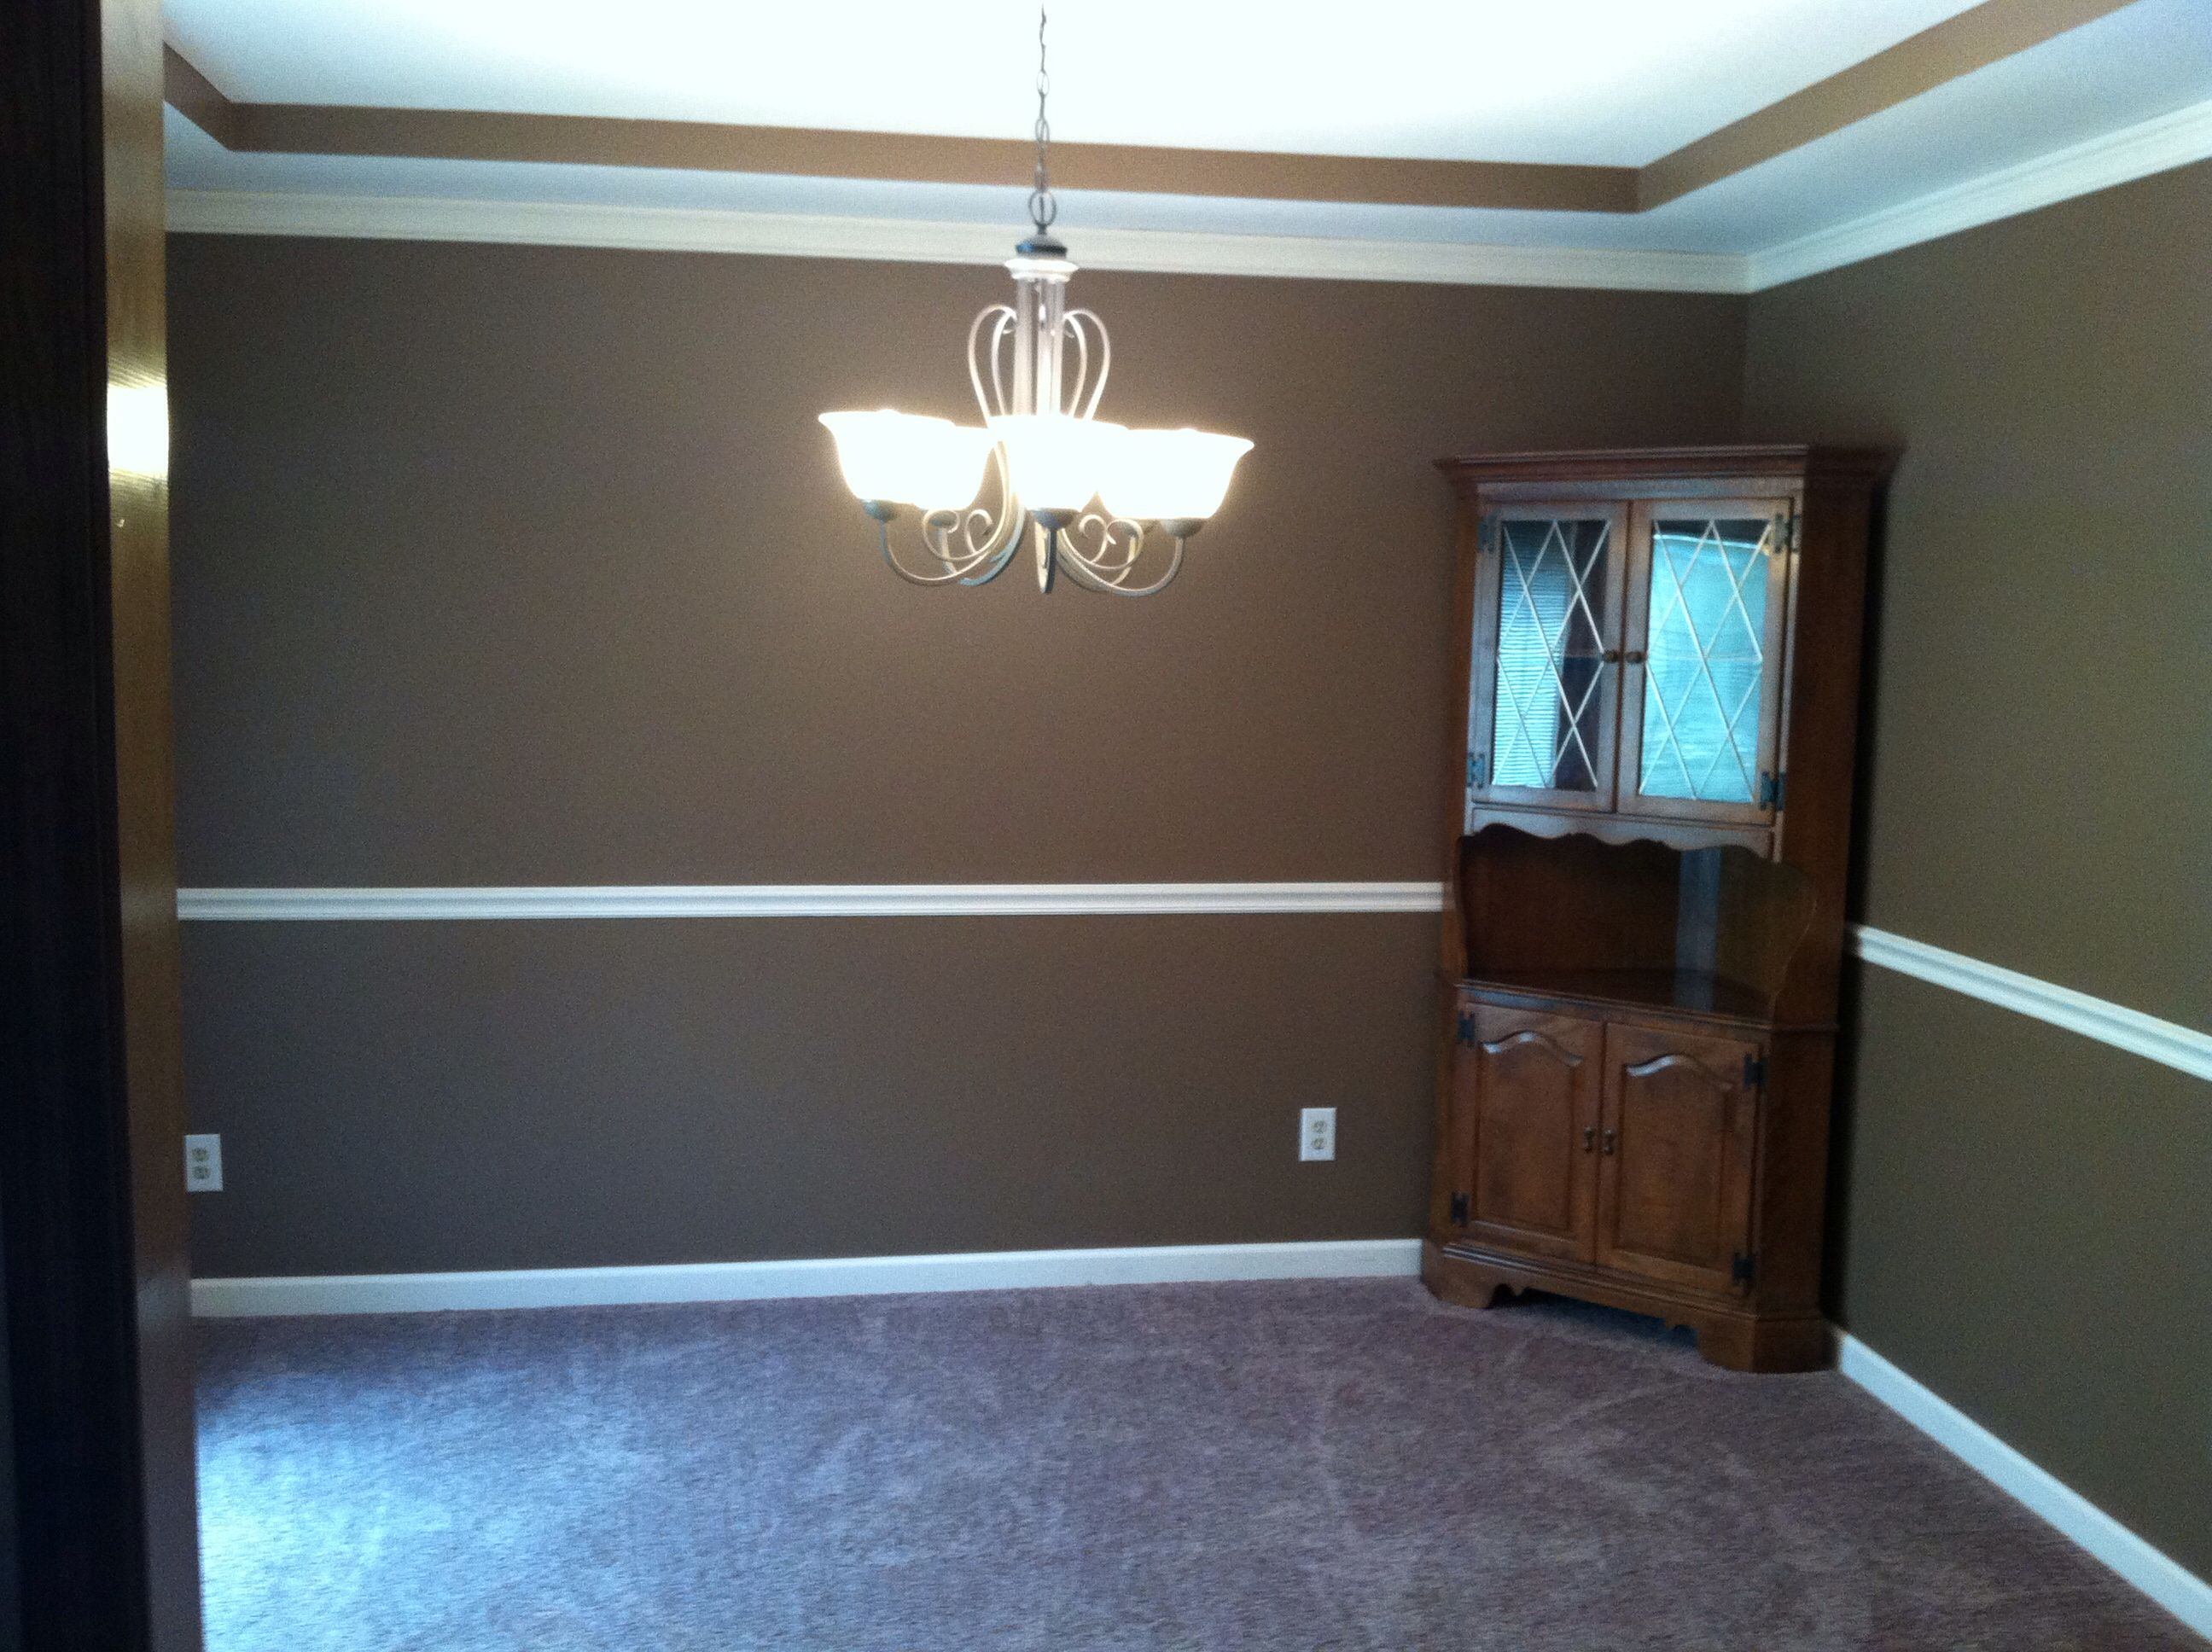 My Dining Room Paint Color Is Sherwin Williams 39 Down Home